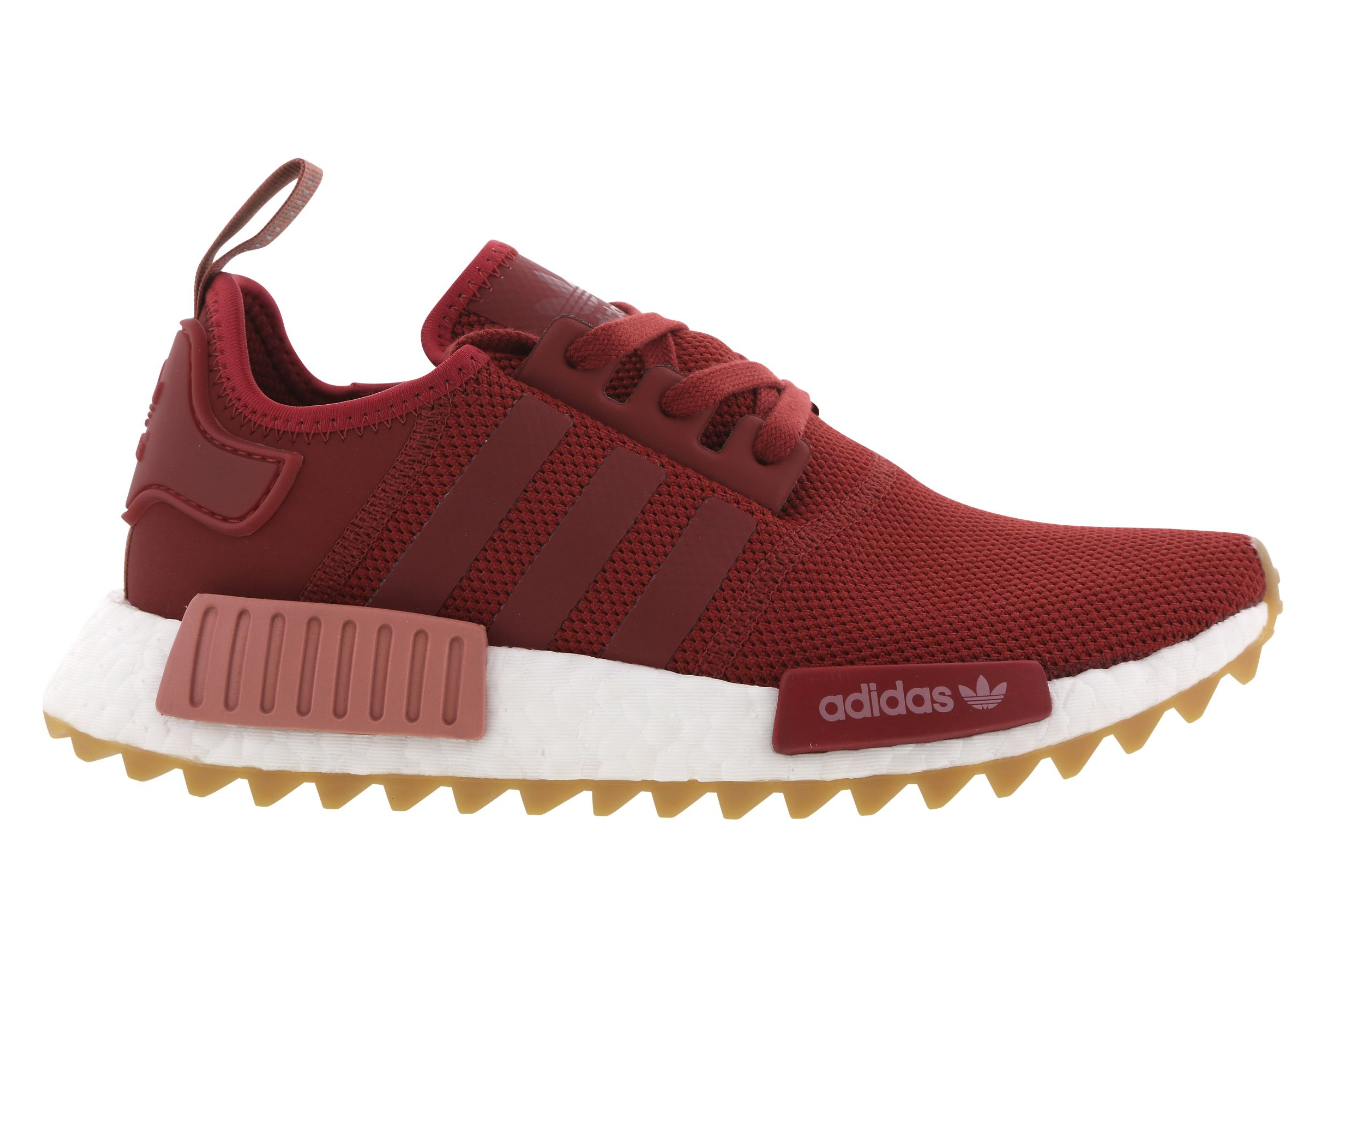 Unisex W ADIDAS NMD R1 TRAIL W Unisex Red Running Trainers S81047 5f02a5